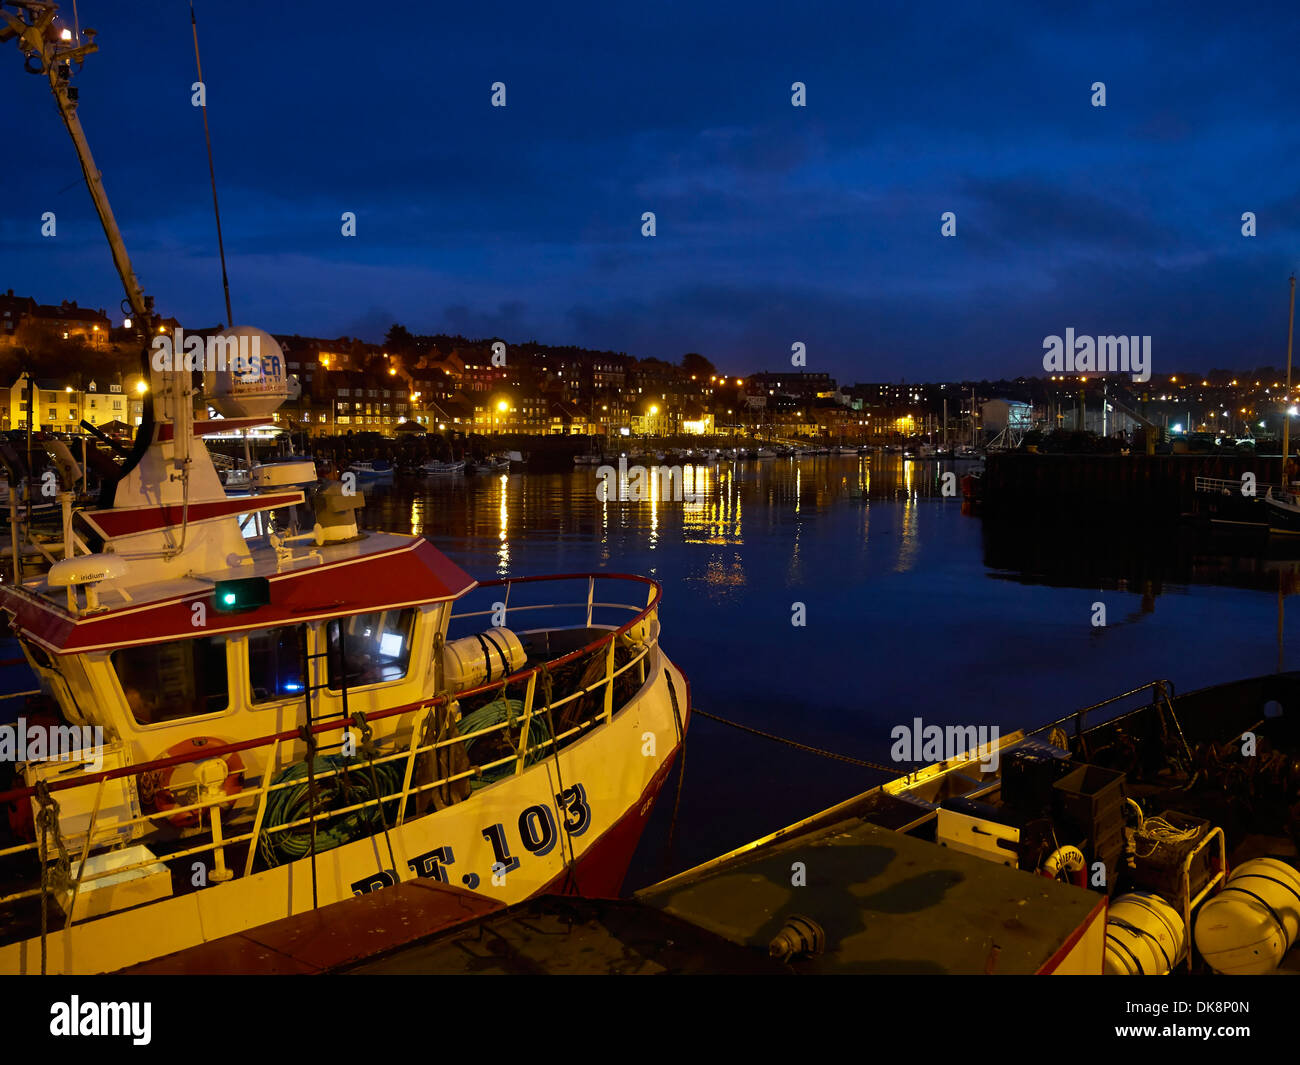 Whitby Upper Harbour at night - Stock Image